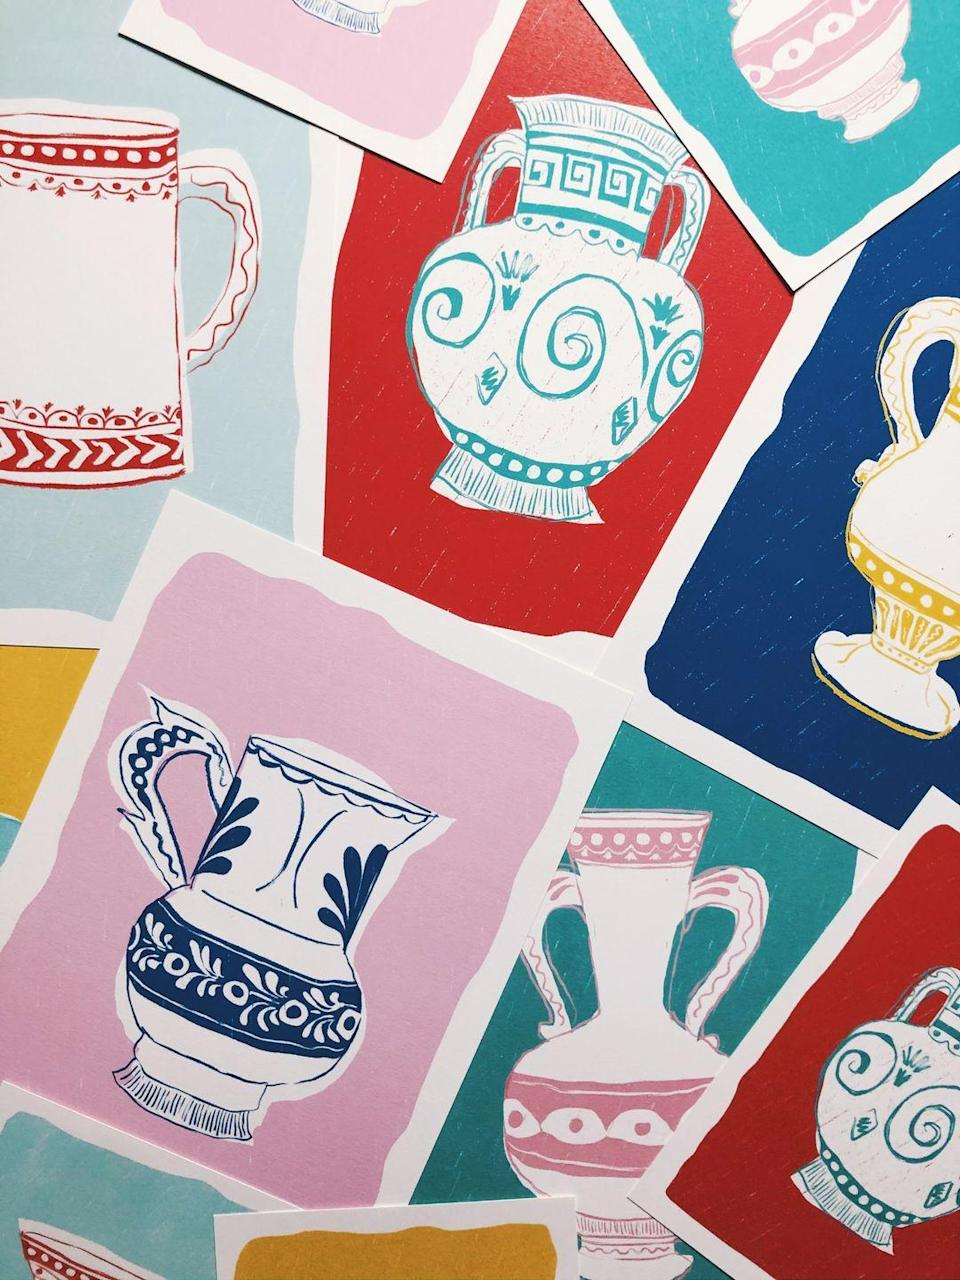 """<p>British illustrator Sasha Compton's drawings of pots with wiggly lines and smudged block colours are full of personality. Hang a row of her artworks in equally colourful frames or introduce a single piece to an existing gallery wall. £65 for a A4 print, <a href=""""https://www.sashacompton.com/product-page/joyful-jug-ii"""" rel=""""nofollow noopener"""" target=""""_blank"""" data-ylk=""""slk:sashacompton.com"""" class=""""link rapid-noclick-resp"""">sashacompton.com</a></p><p><br></p><p><strong>This article first appeared</strong> <strong>in </strong><a href=""""https://magsdirect.co.uk/magazine-category/lifestyle/elle-decoration/"""" rel=""""nofollow noopener"""" target=""""_blank"""" data-ylk=""""slk:ELLE Decoration March 2021"""" class=""""link rapid-noclick-resp"""">ELLE Decoration March 2021</a></p><p><strong>Like this article? </strong><u><a href=""""https://hearst.emsecure.net/optiext/optiextension.dll?ID=LKHLy4U%2BAPDM5JcrmOKxtYntAlN0FMNelBSKJmXANeFj7b3wVEXa8UQNxN3Kk5RyF_0Q89Kyk6%2BjLh"""" rel=""""nofollow noopener"""" target=""""_blank"""" data-ylk=""""slk:Sign up to our newsletter"""" class=""""link rapid-noclick-resp"""">Sign up to our newsletter</a></u> to get more articles like this delivered straight to your inbox.</p><p><a class=""""link rapid-noclick-resp"""" href=""""https://hearst.emsecure.net/optiext/optiextension.dll?ID=LKHLy4U%2BAPDM5JcrmOKxtYntAlN0FMNelBSKJmXANeFj7b3wVEXa8UQNxN3Kk5RyF_0Q89Kyk6%2BjLh"""" rel=""""nofollow noopener"""" target=""""_blank"""" data-ylk=""""slk:SIGN UP""""><strong><strong><strong>SIGN UP</strong></strong></strong></a></p><p><strong>Keep your spirits up </strong>and <a href=""""https://www.hearstmagazines.co.uk/elle-decoration-magazine-subscription-website?utm_source=elledecoration.co.uk&utm_medium=referral&utm_content=stayathome"""" rel=""""nofollow noopener"""" target=""""_blank"""" data-ylk=""""slk:subscribe to ELLE Decoration here"""" class=""""link rapid-noclick-resp"""">subscribe to ELLE Decoration here</a>, so our magazine is delivered direct to your door.<br></p>"""